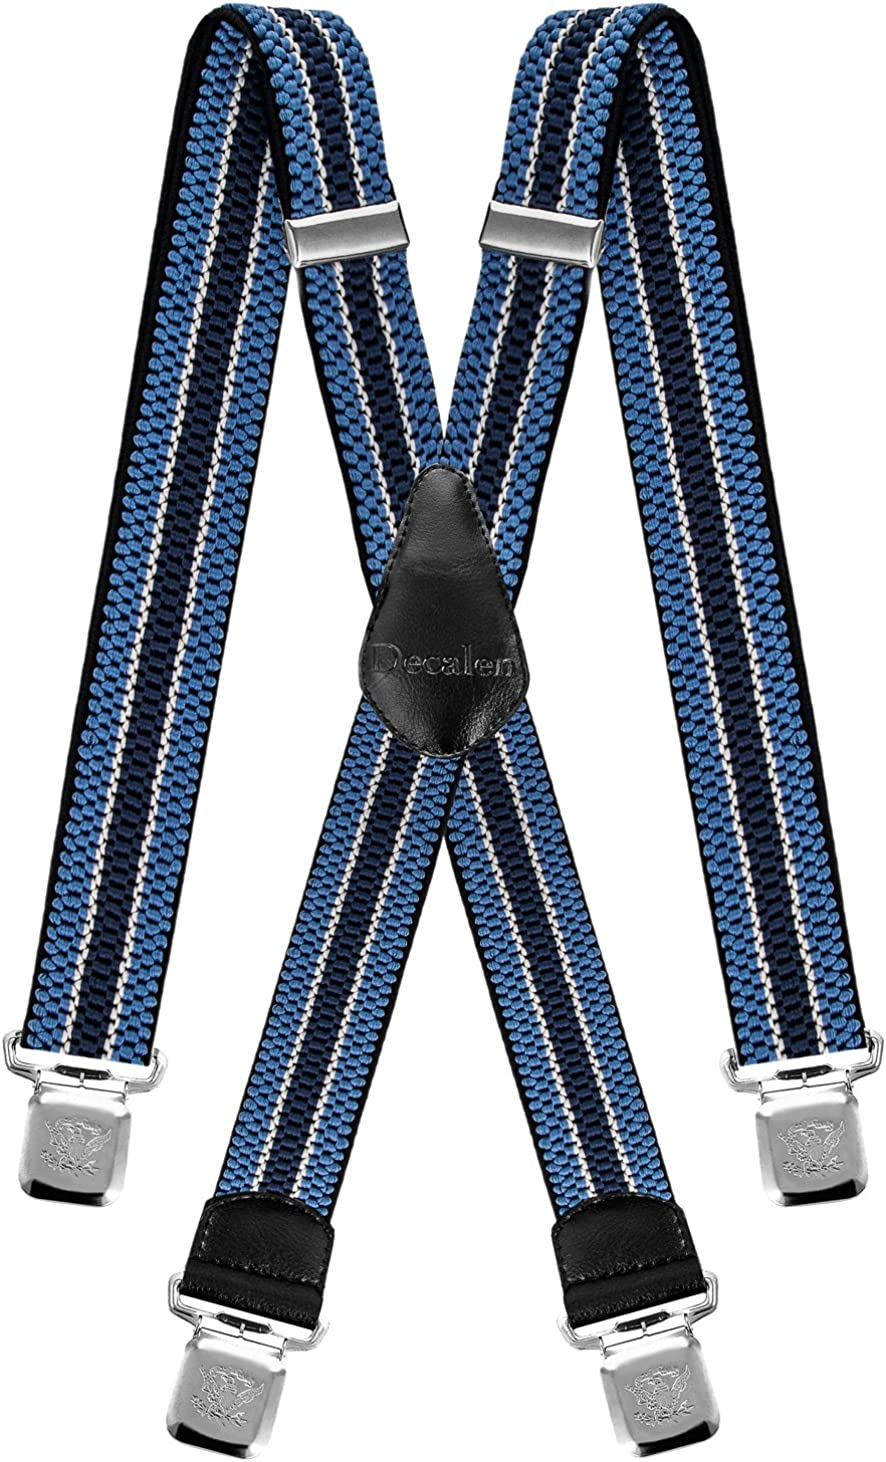 Decalen Mens Suspenders Very Strong Clips Heavy Duty Braces Big and Tall X Style Black Grey White